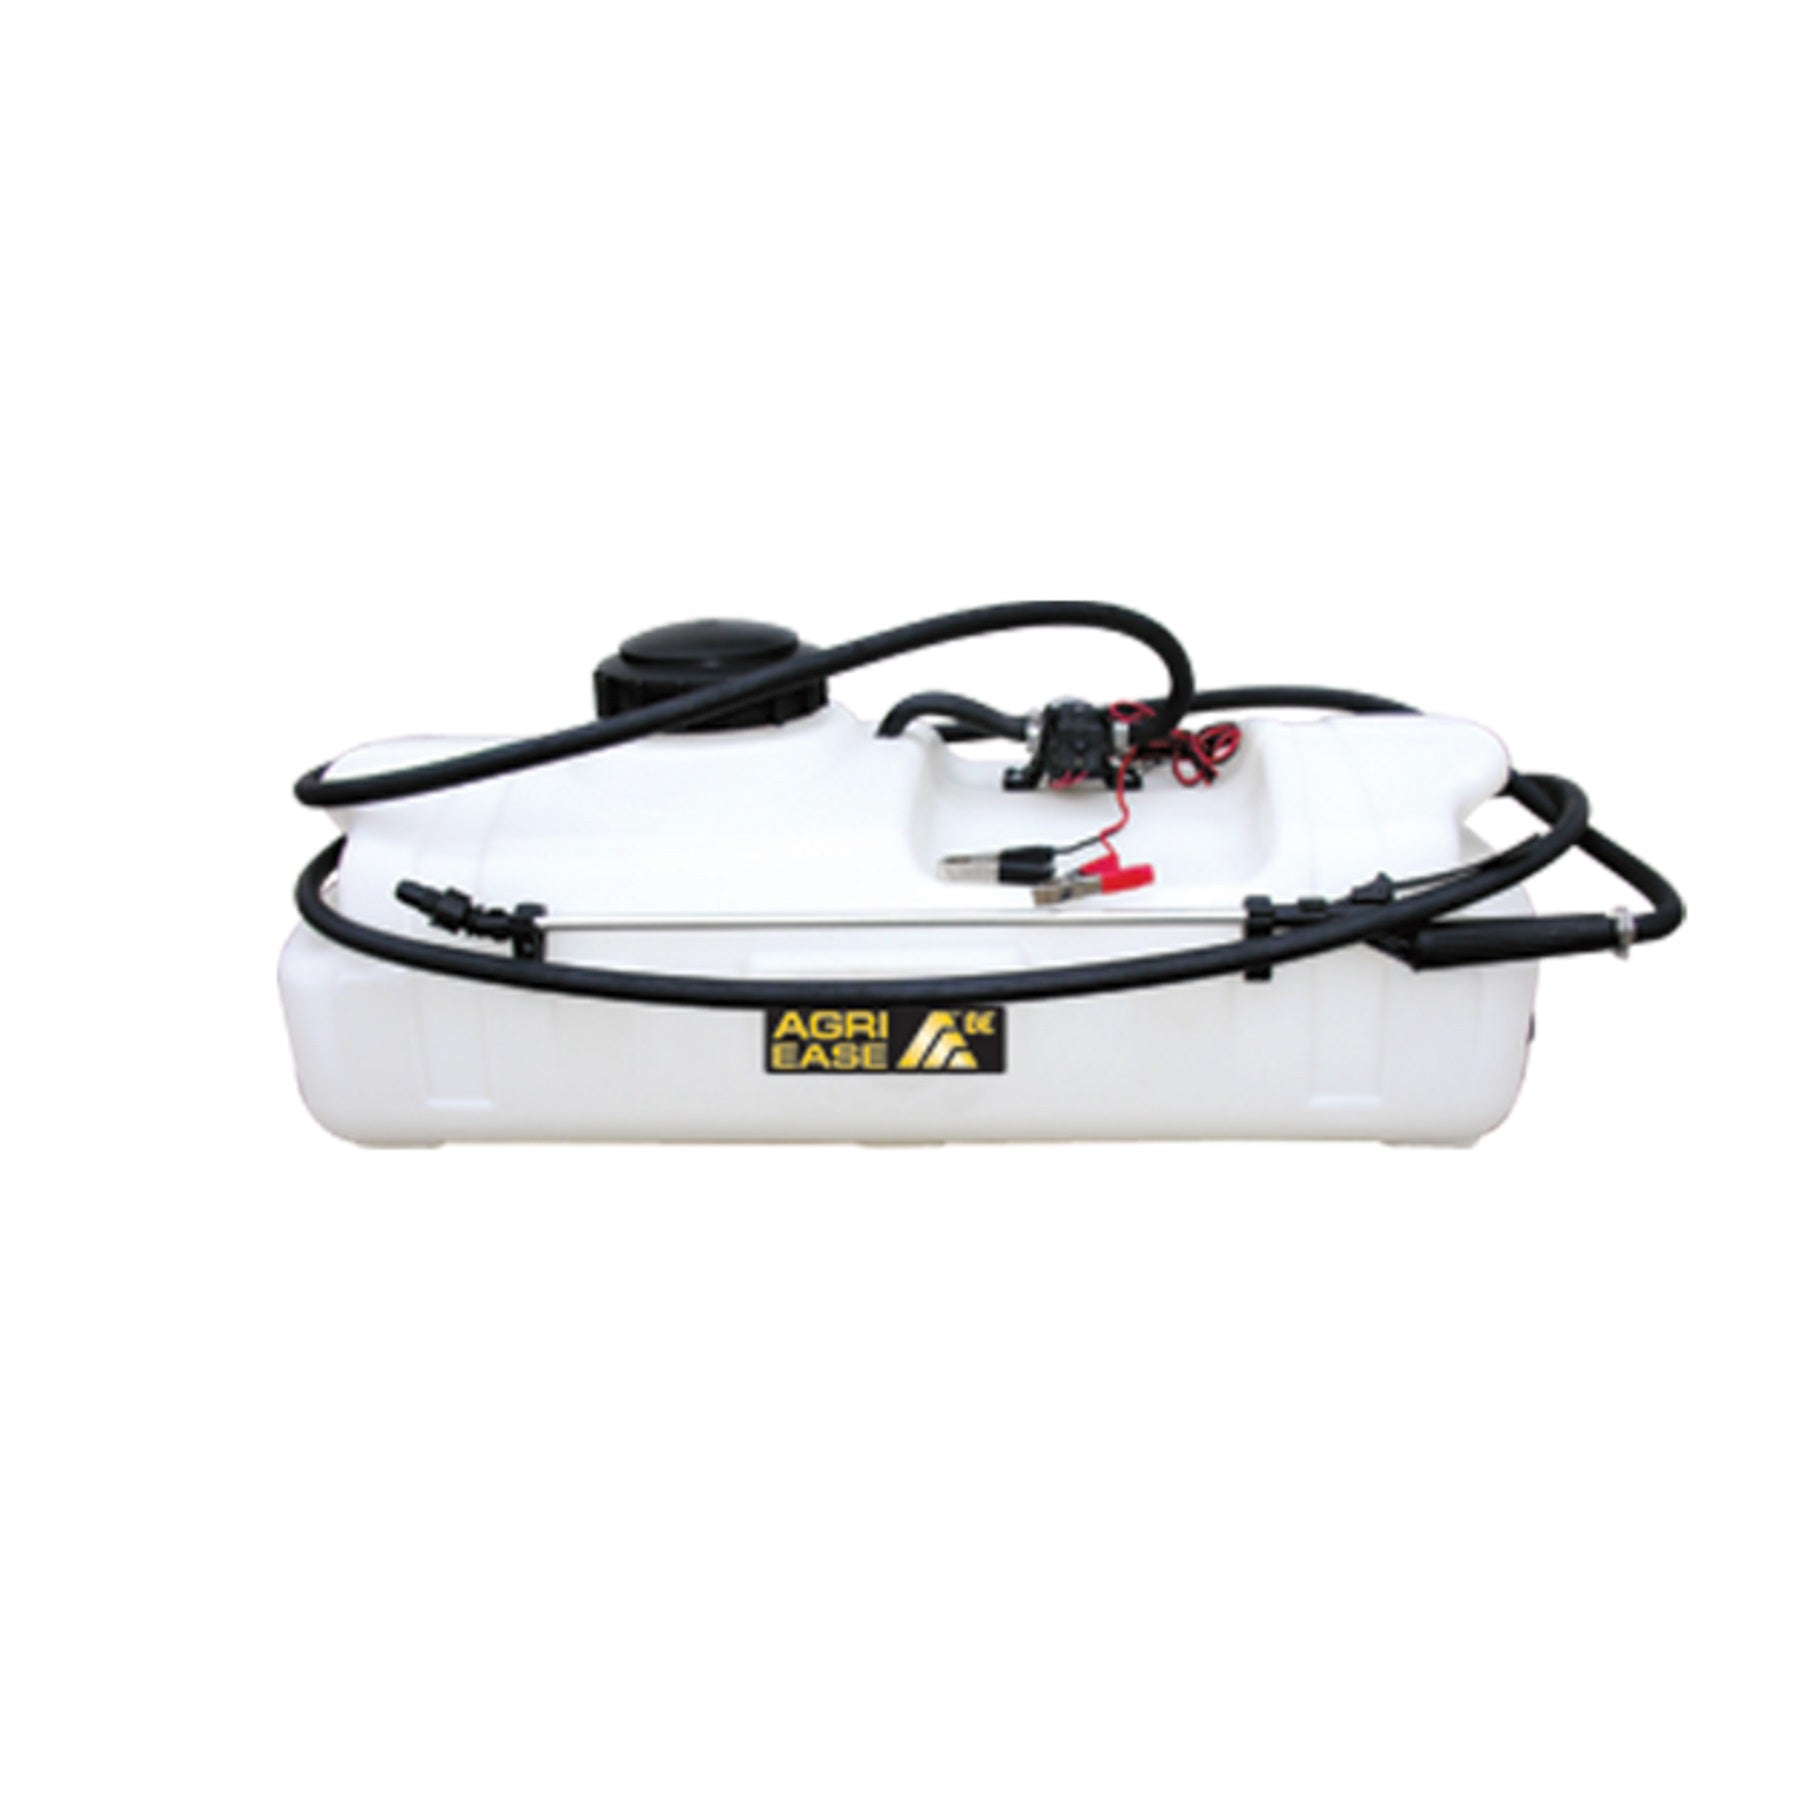 BE 12Volt Chemical Sprayer 15 Gallon 1.0gpm